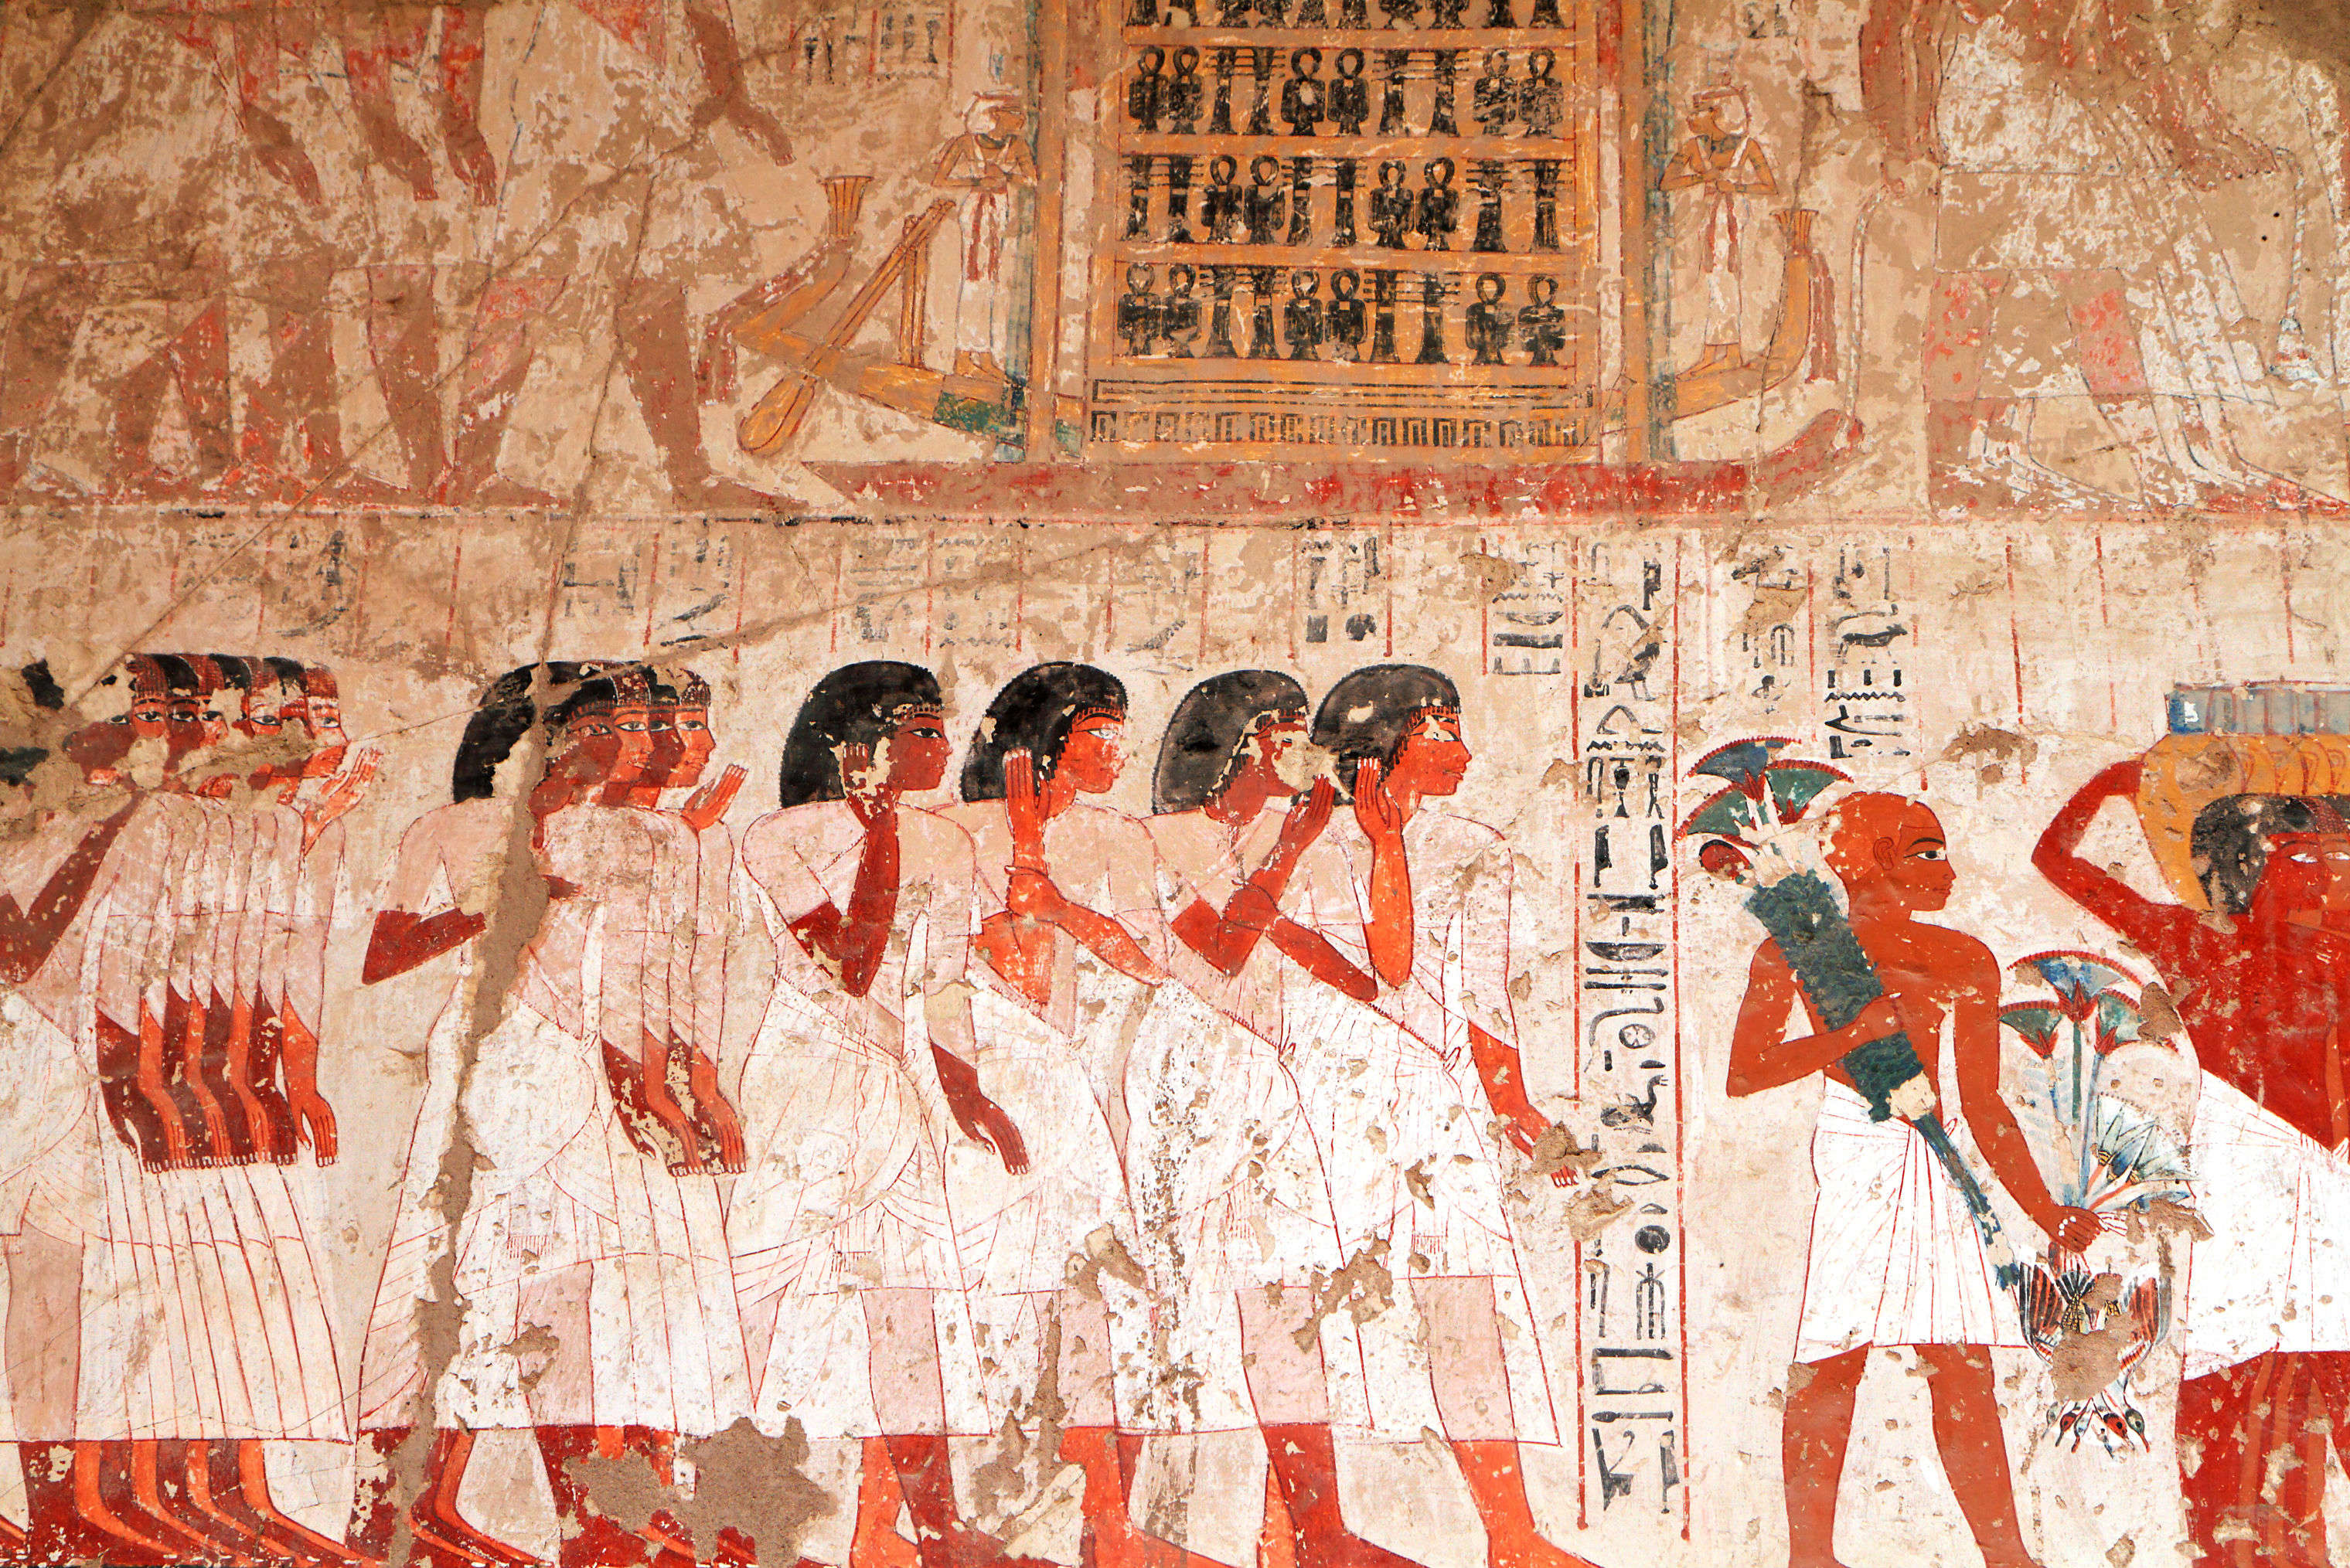 Ptolemaic tomb discovered in Egypt with paintings detailing Egyptian life from that era